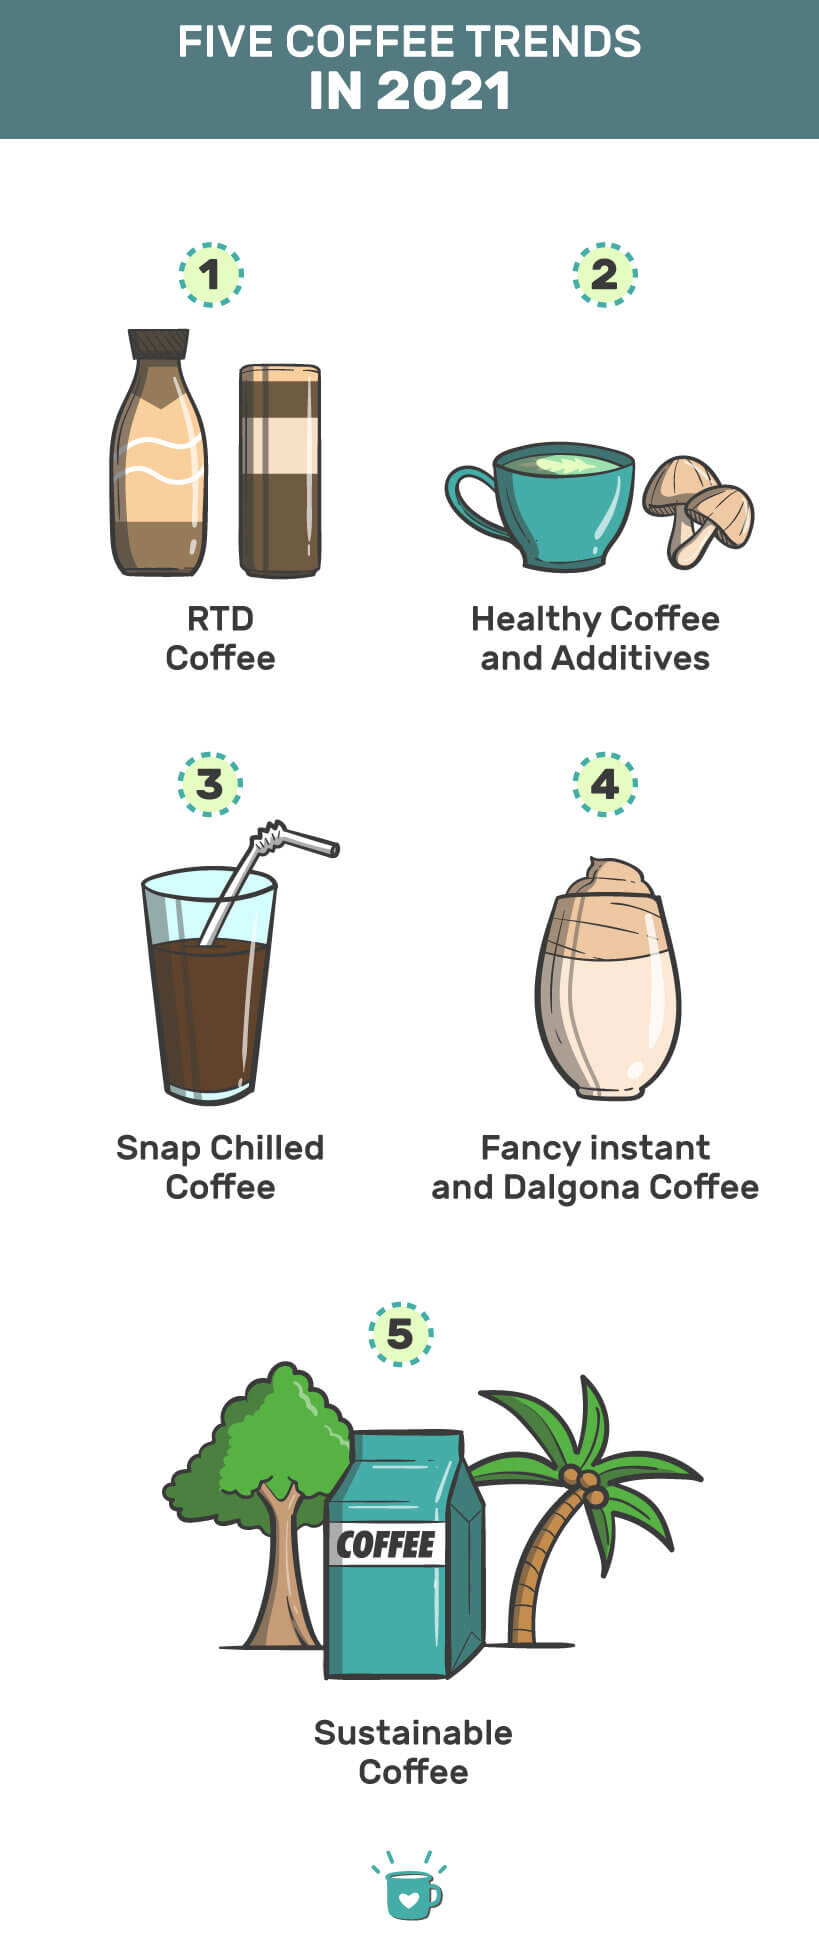 Coffee trends in 2021